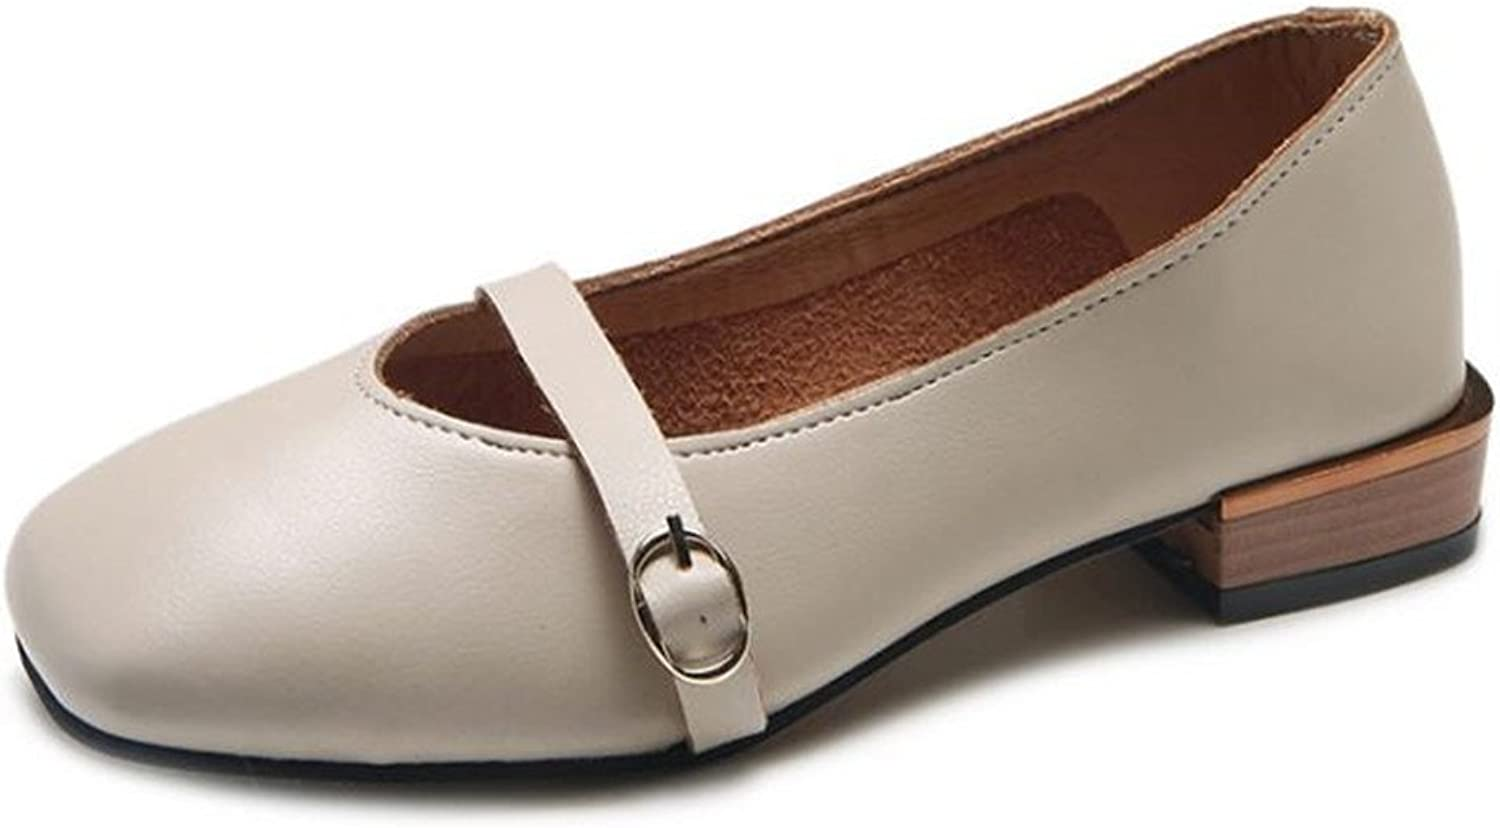 COLOV Women's Mary Jane Style Leather Simple Flats